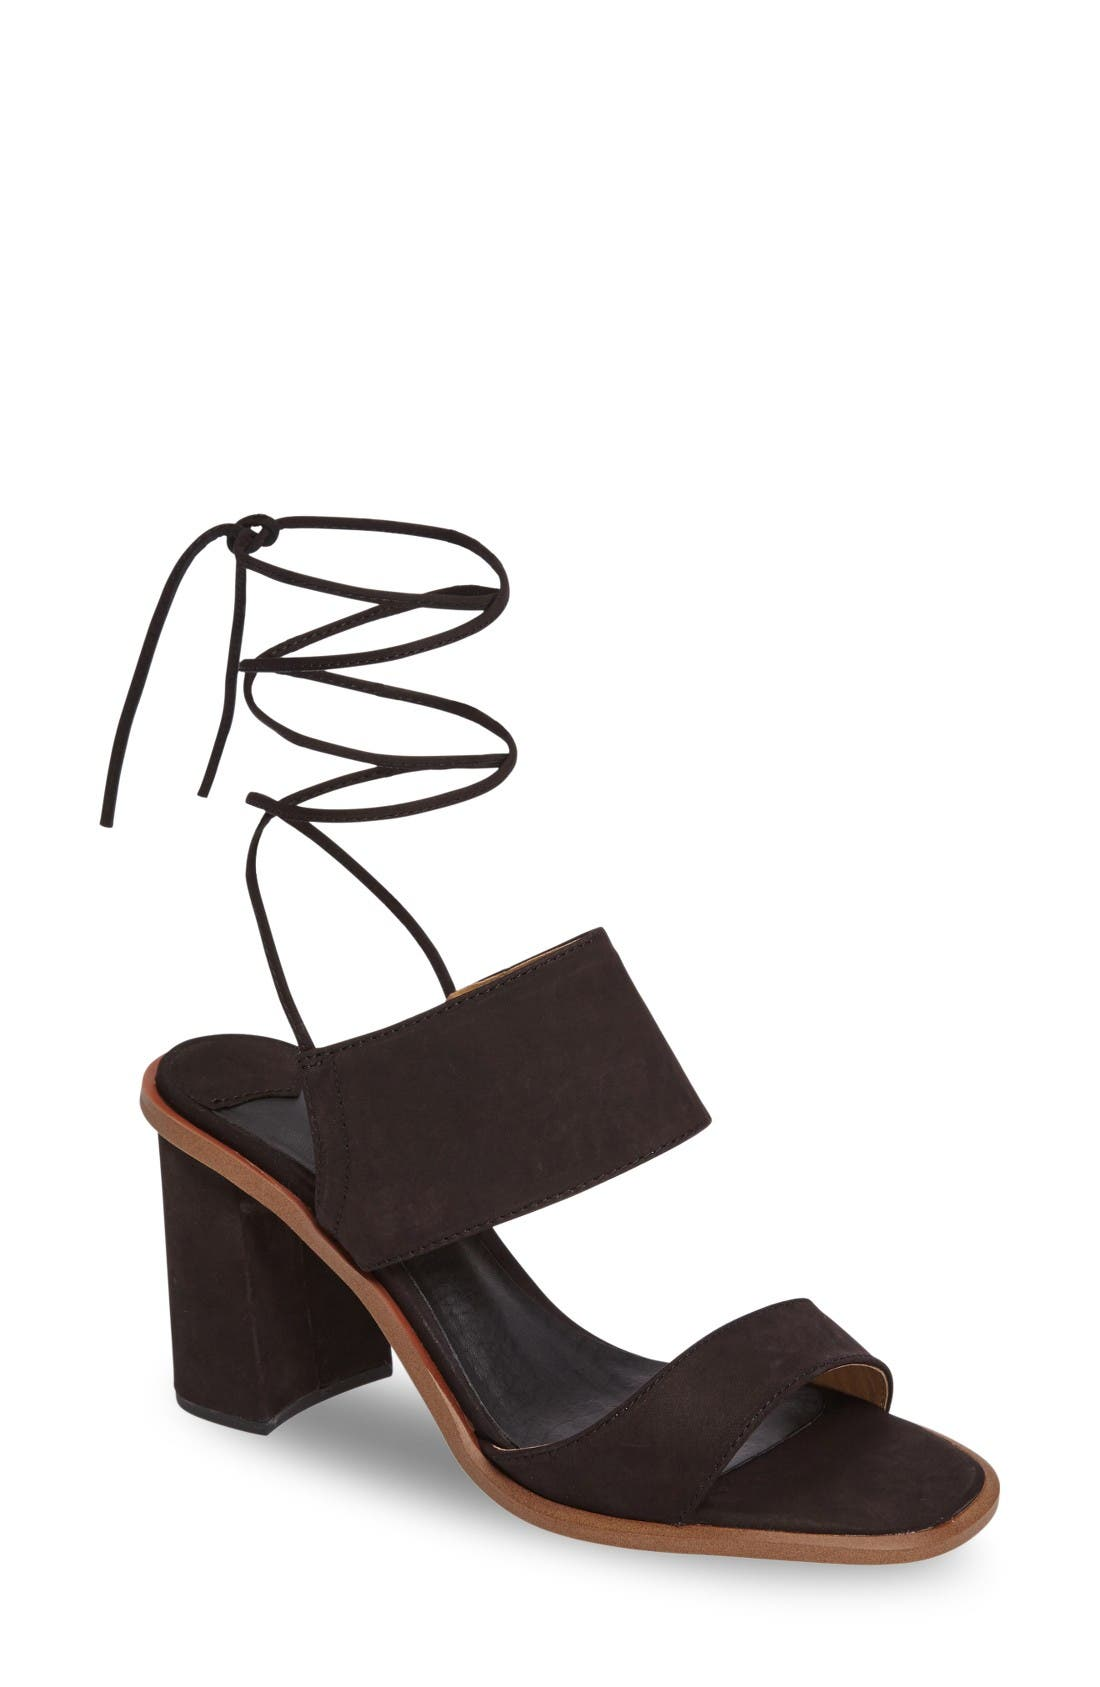 Alternate Image 1 Selected - Tony Bianco Cuoco Ankle Strap Sandal (Women)